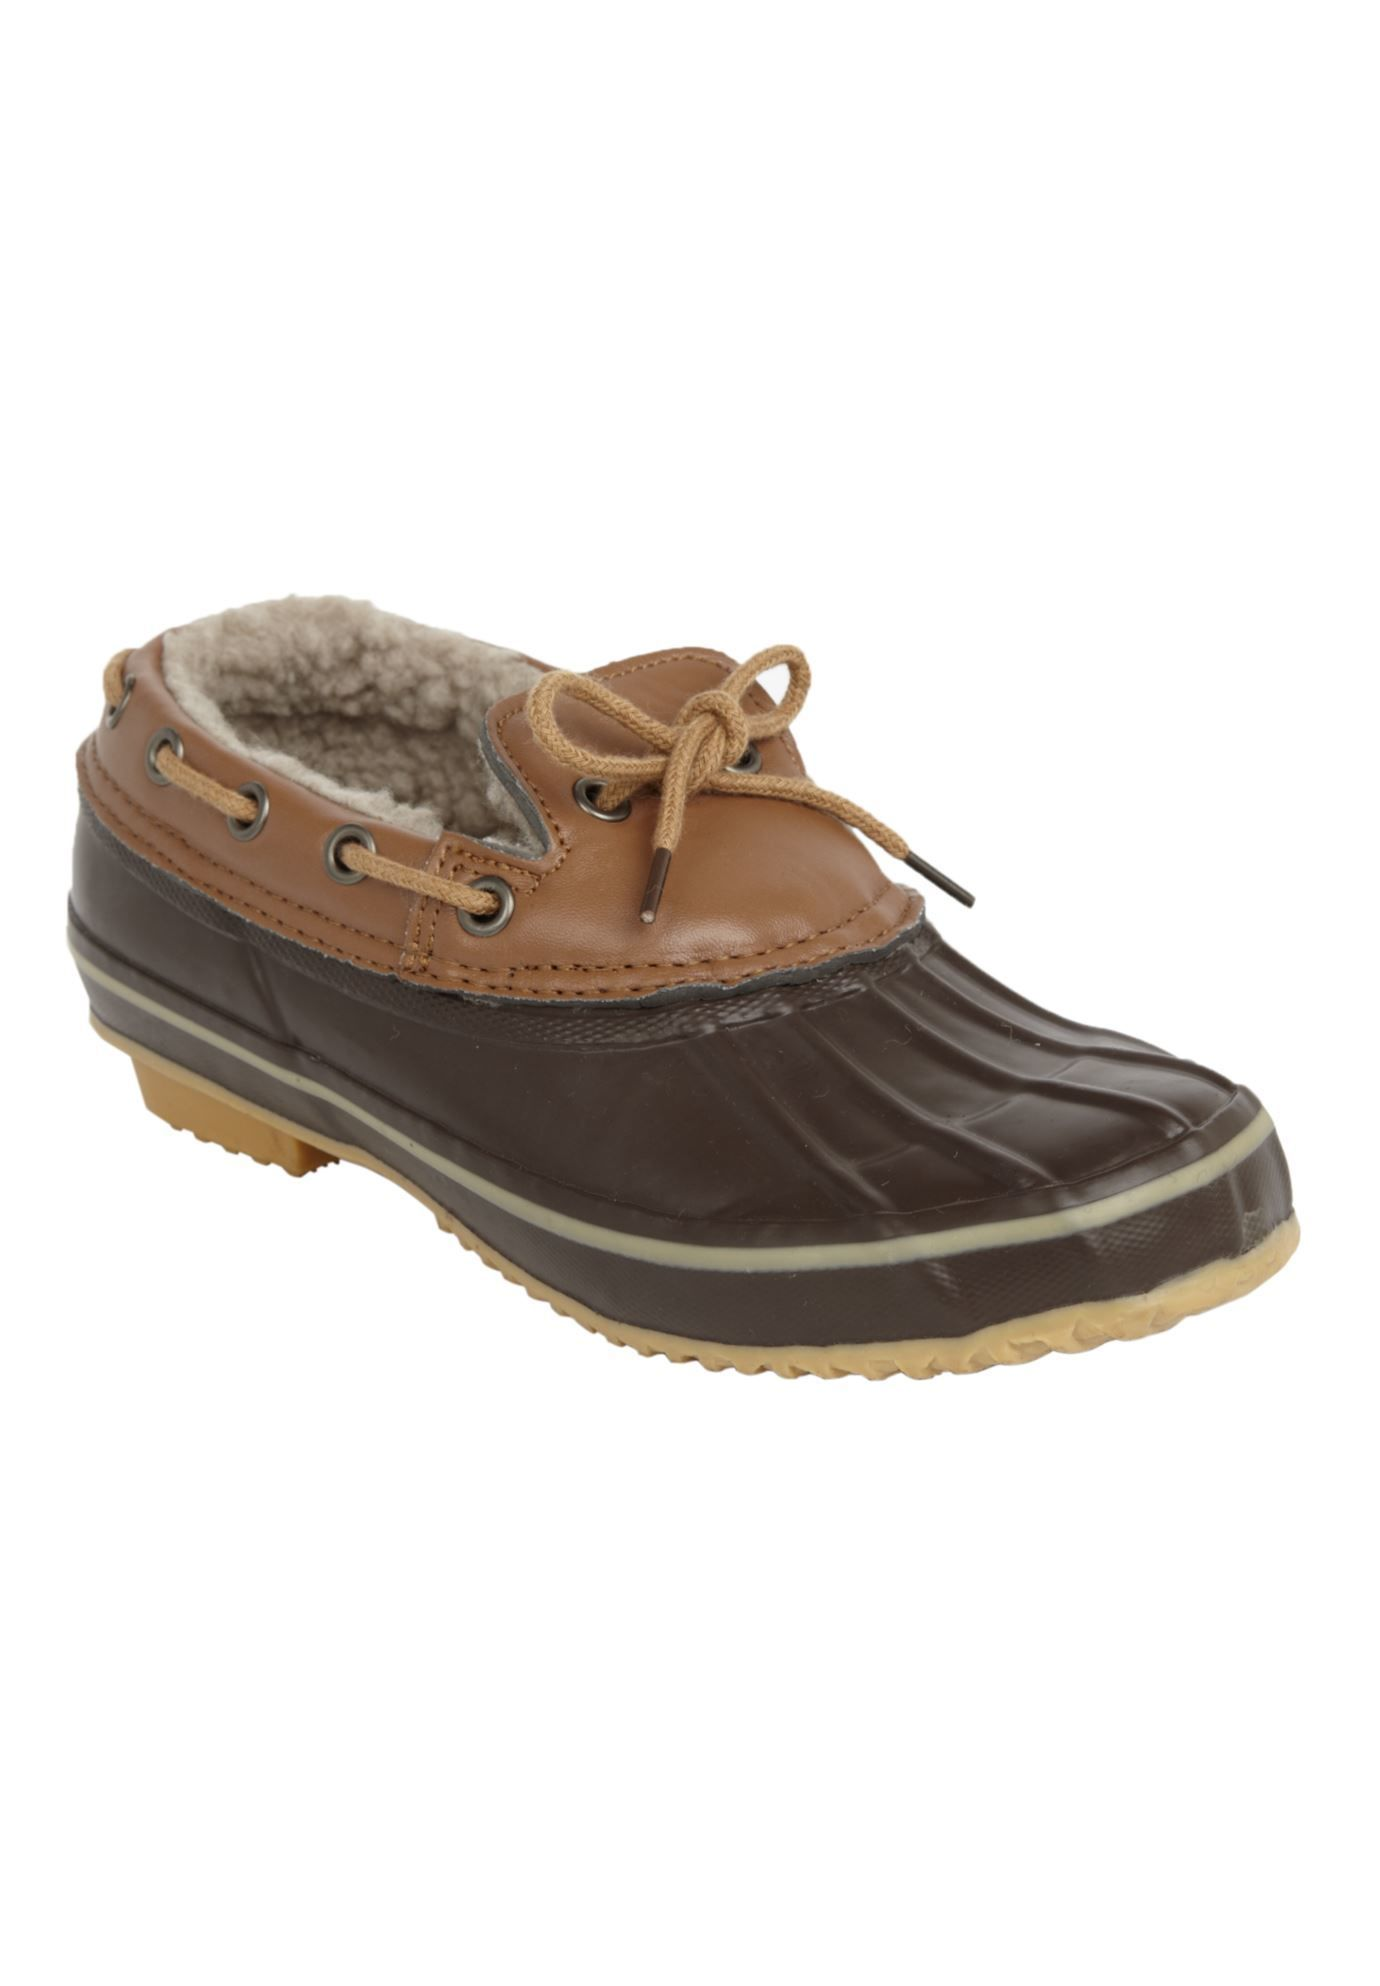 dd9593b5d00e The Storm All-Weather Shoe by Comfortview - Women s Plus Size Clothing